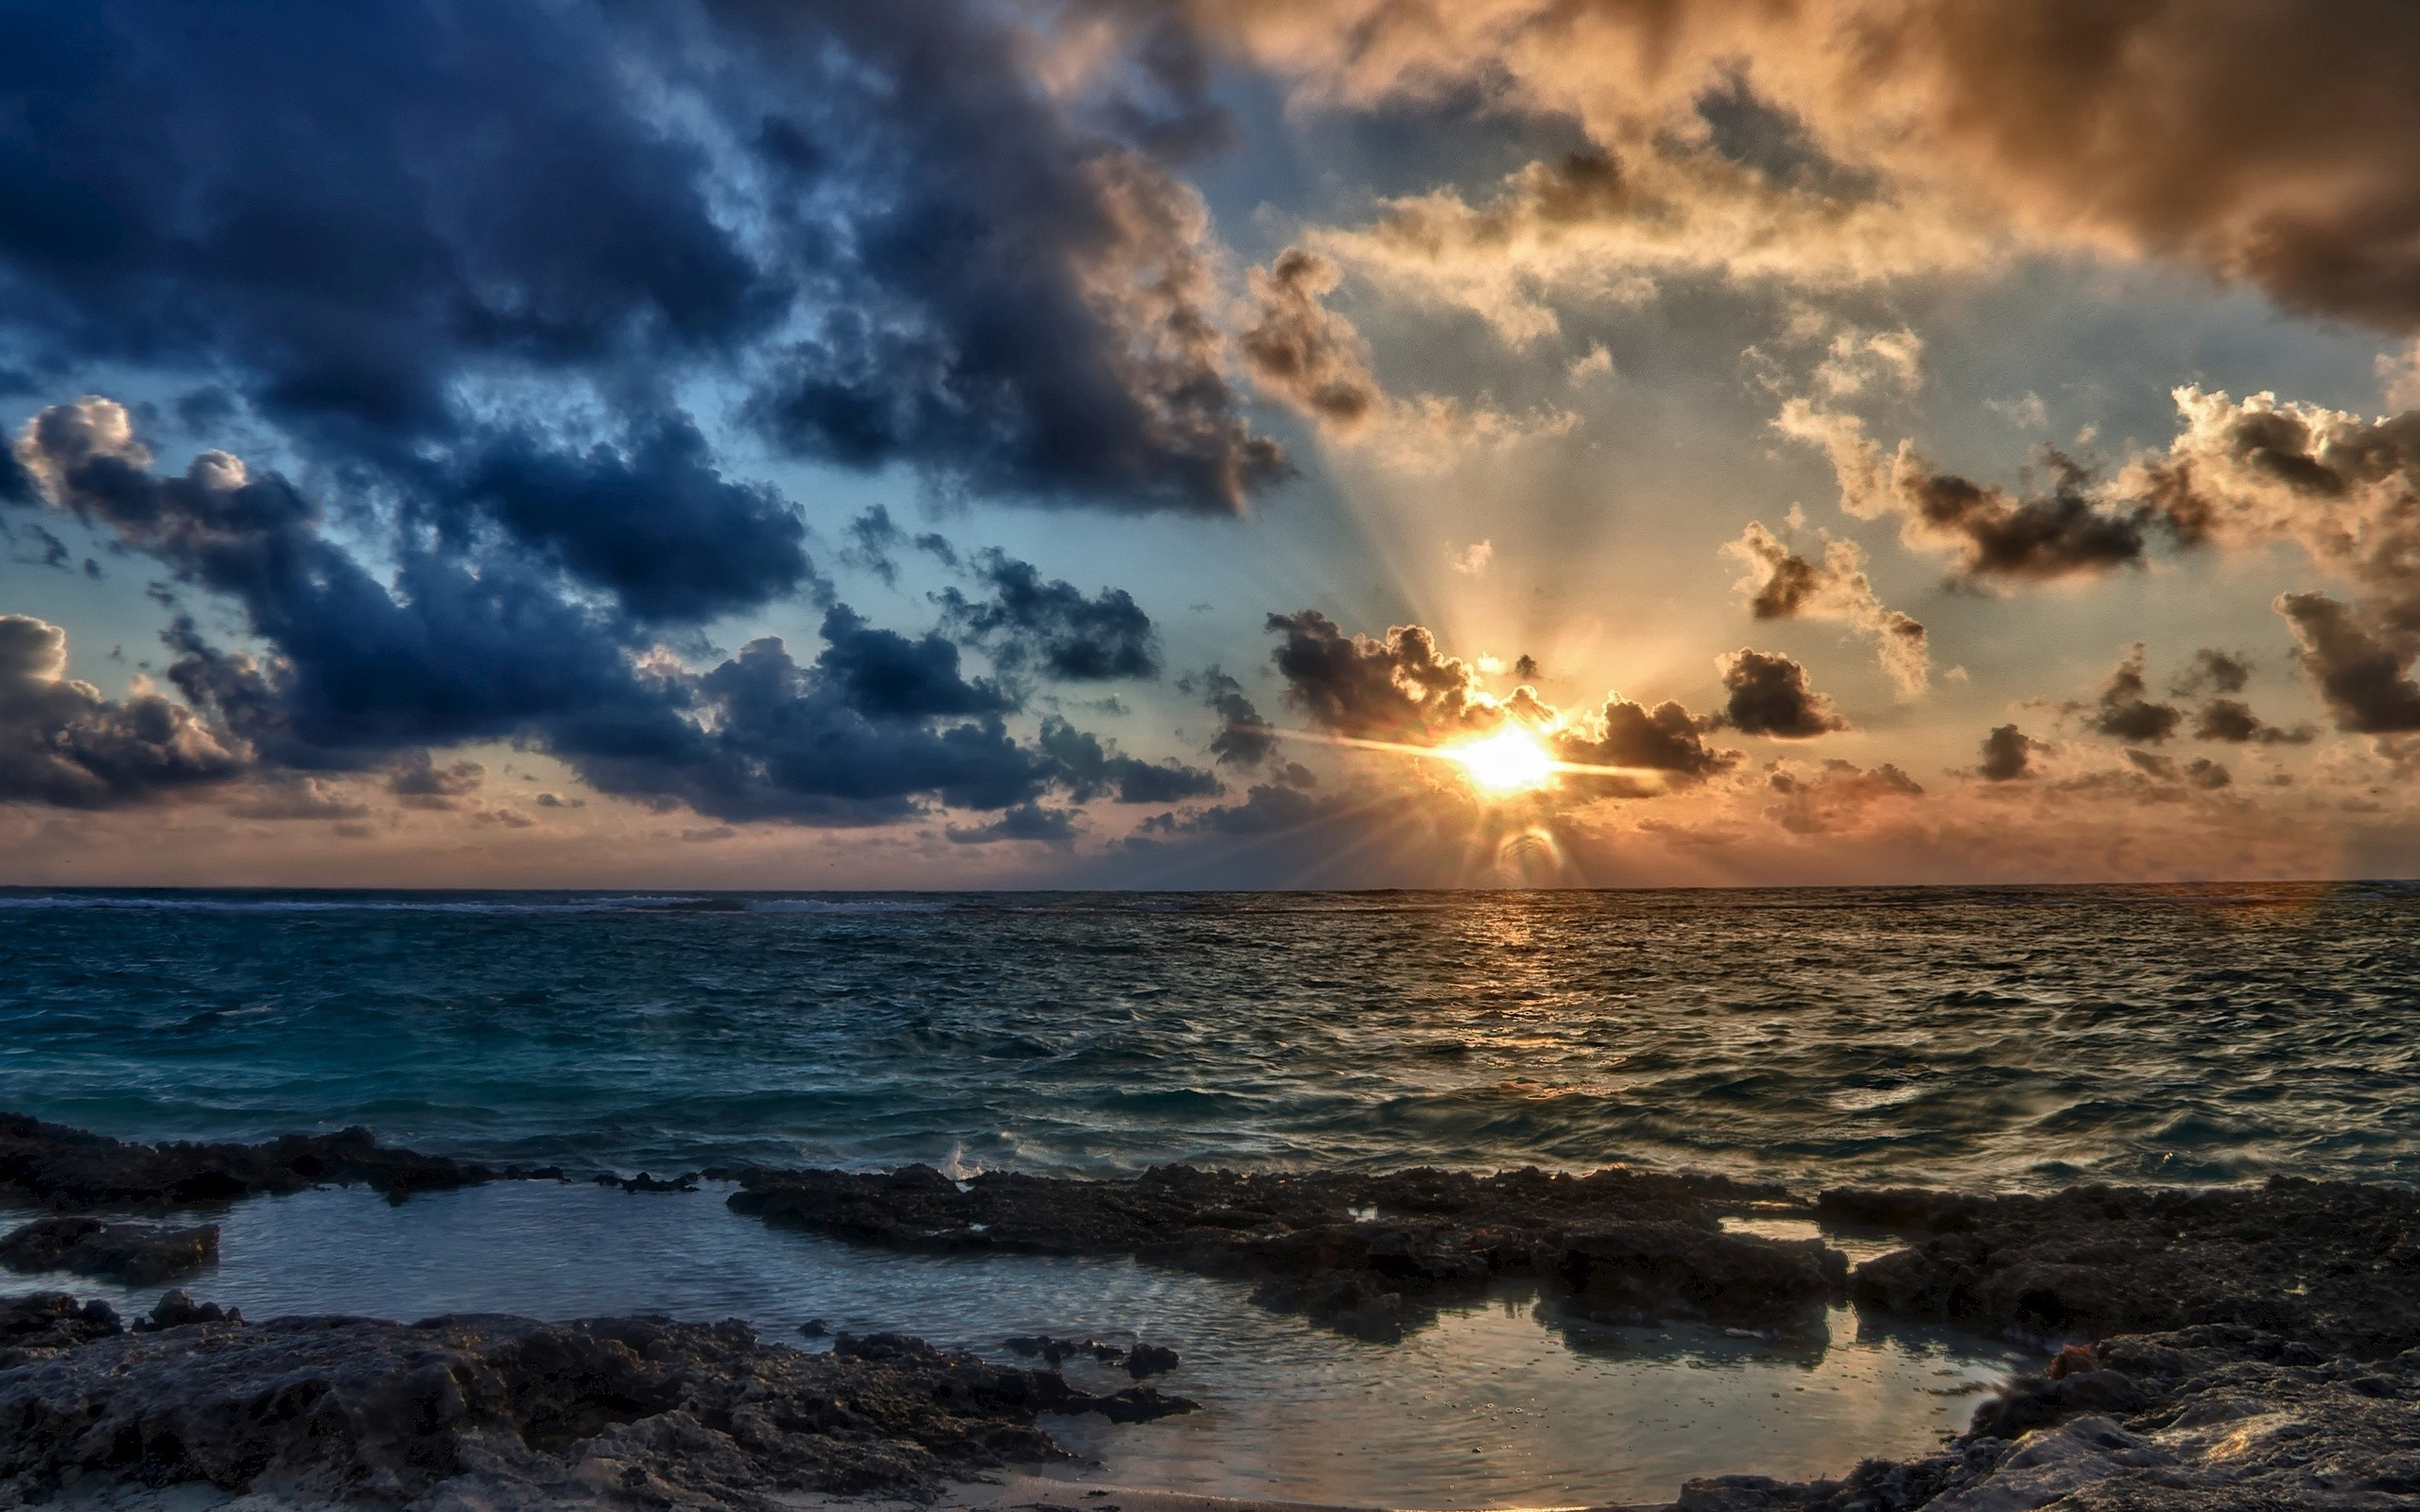 sunset clouds and ocean wallpaper - photo #1